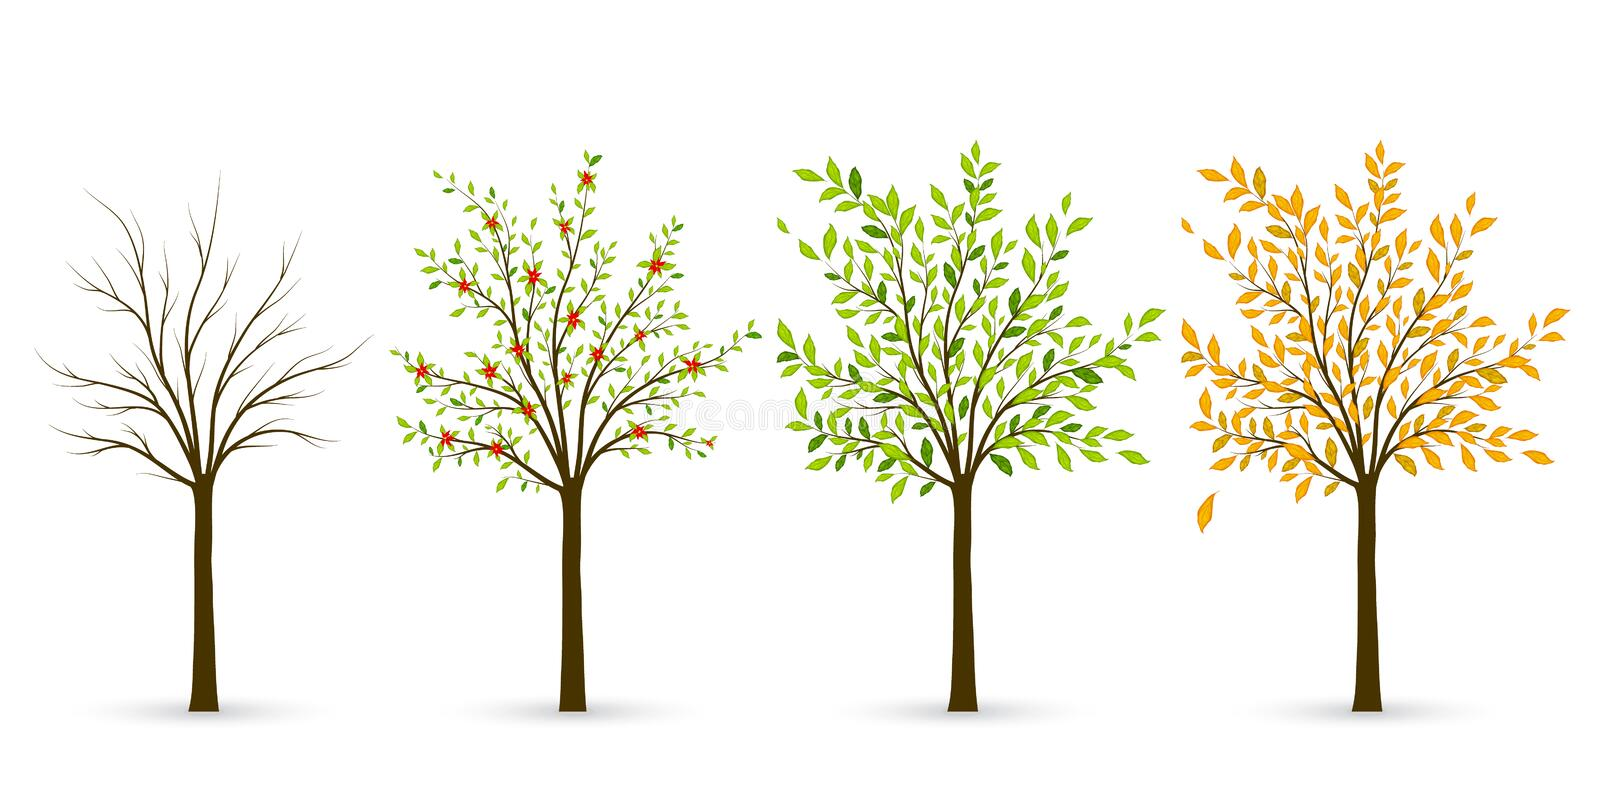 Tree in four seasons - winter, spring, summer, autumn. Vector il royalty free illustration